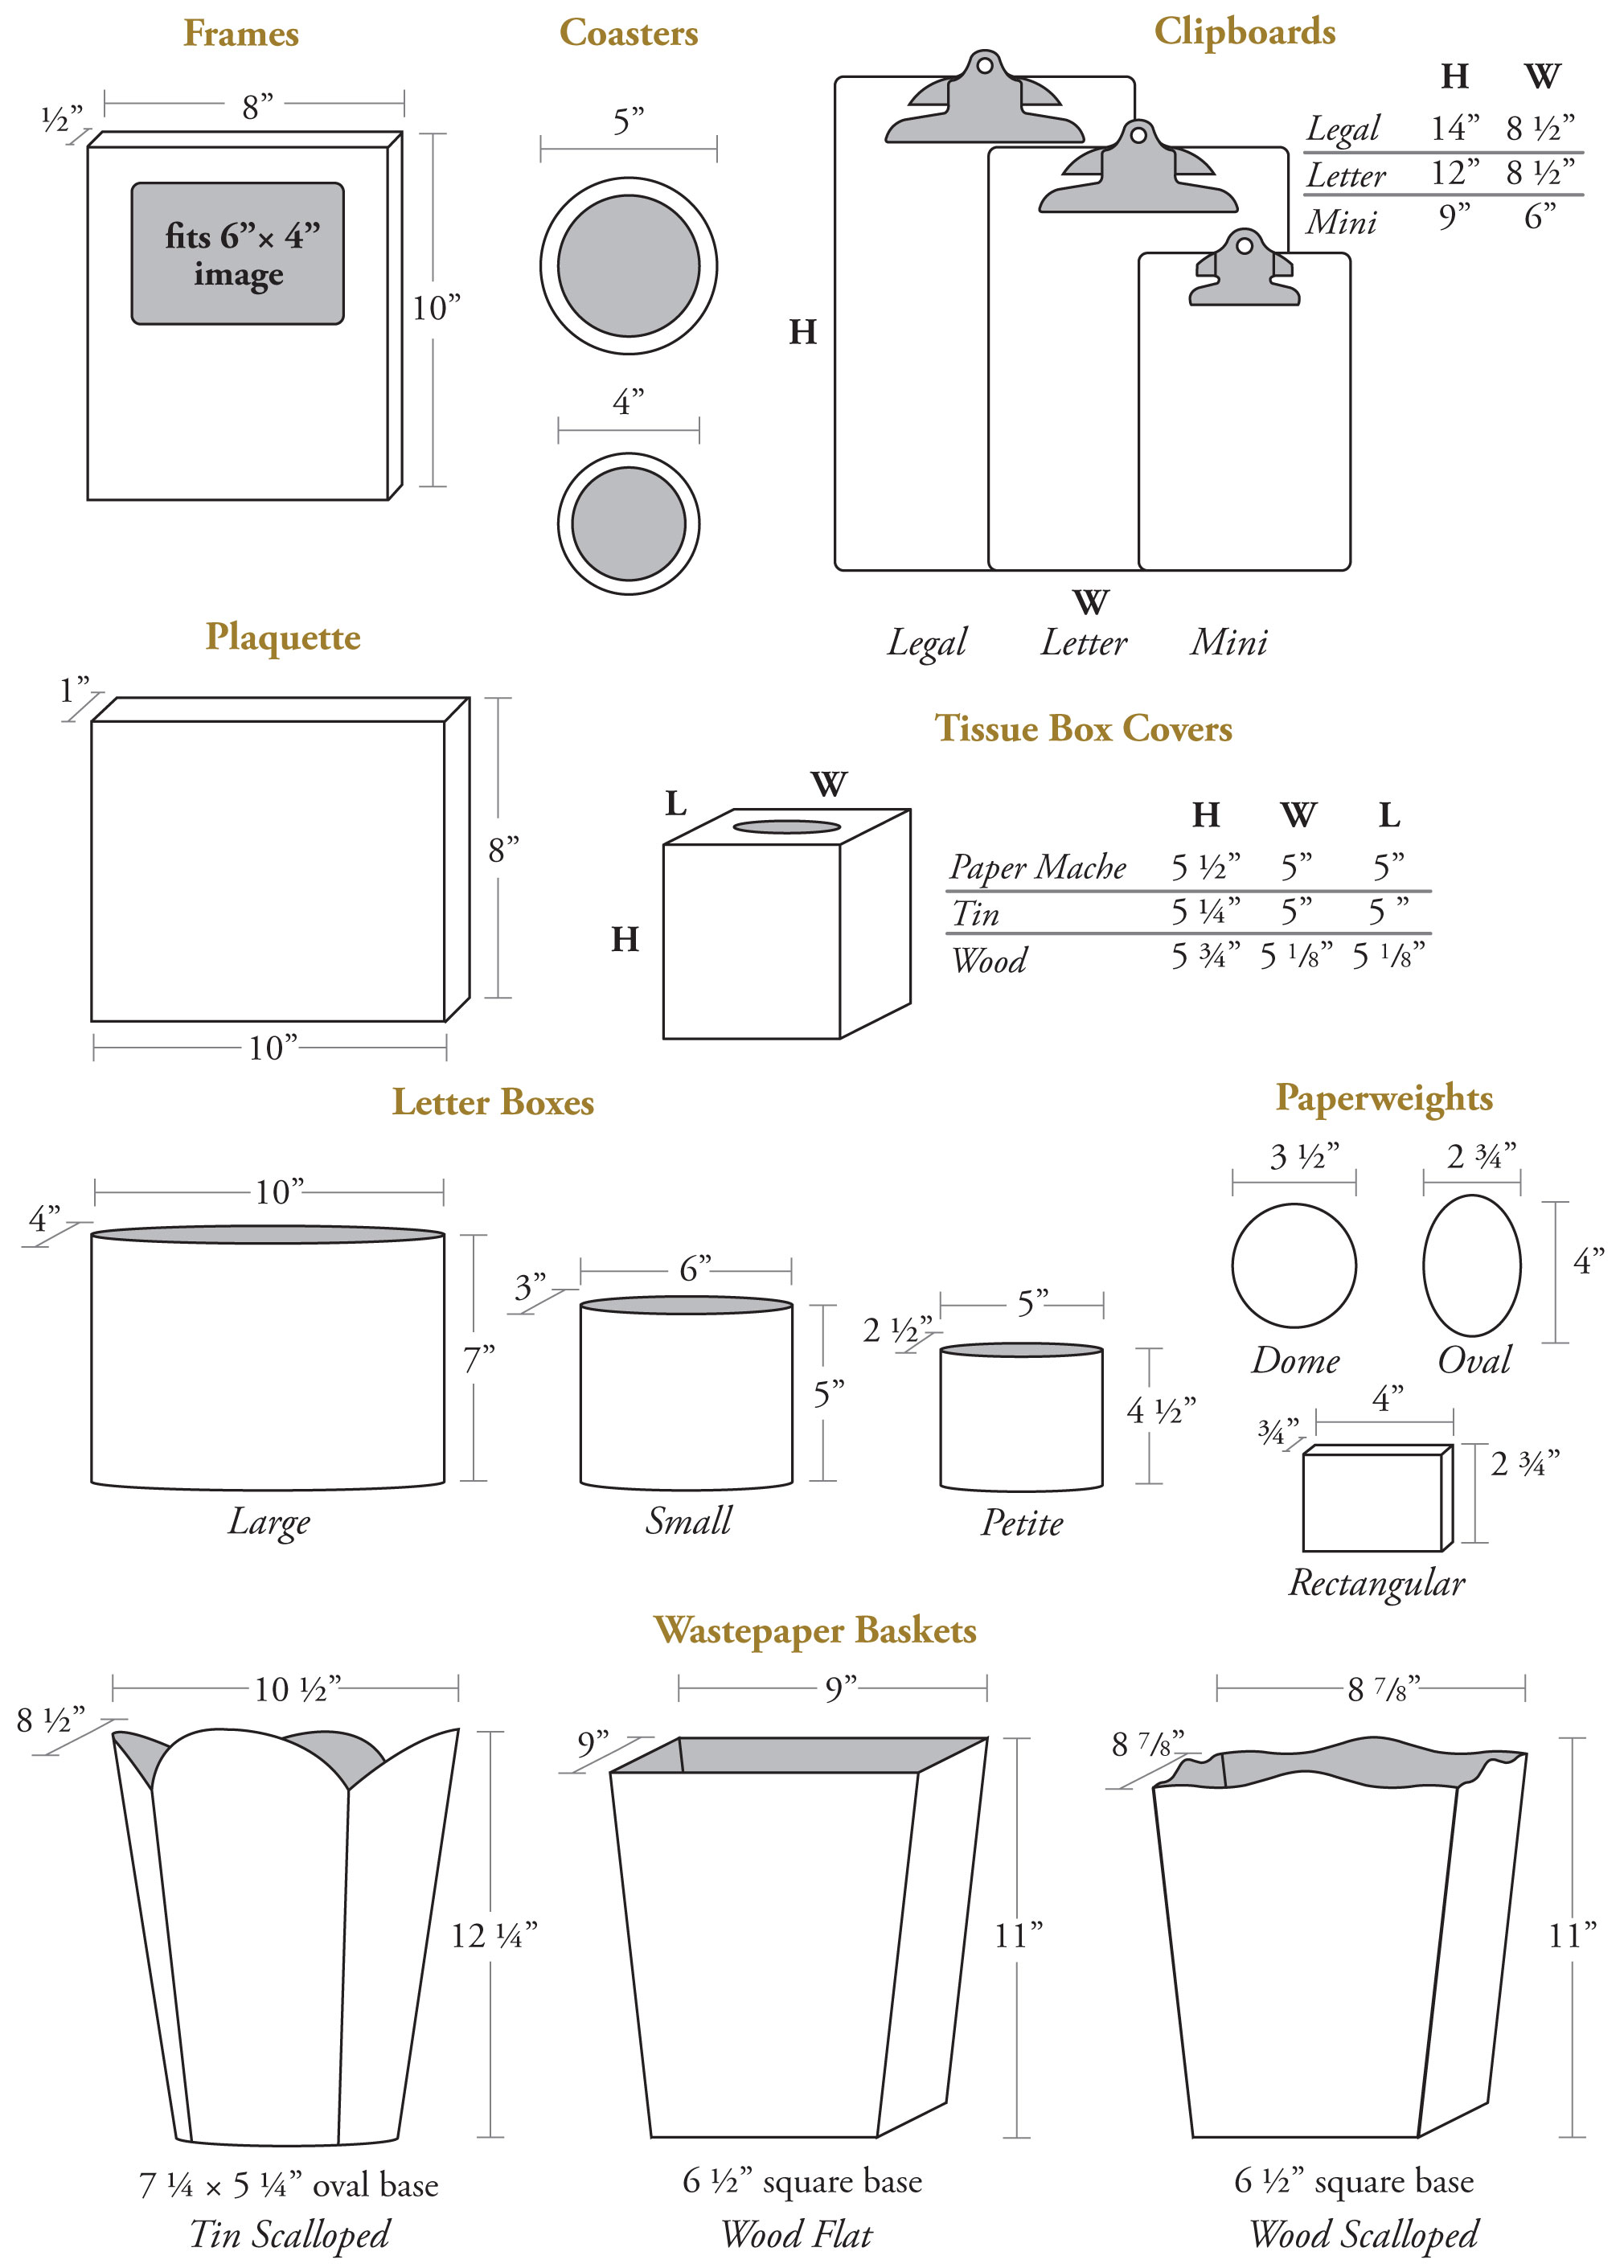 Marye-Kelley Product Specifications